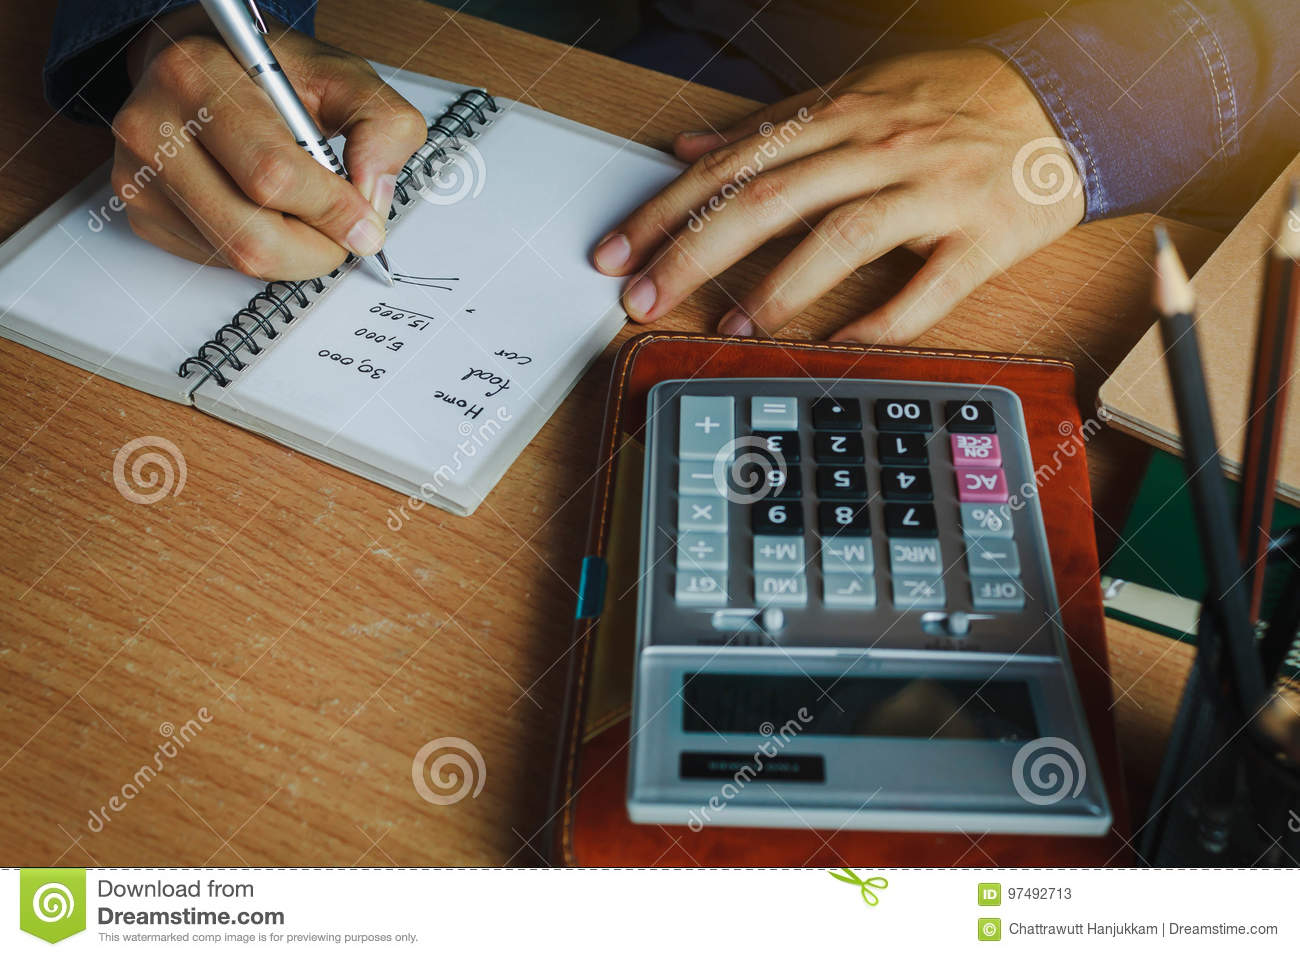 Hand Asian man calculate finances and accounting for monthly expenses / charges or cost